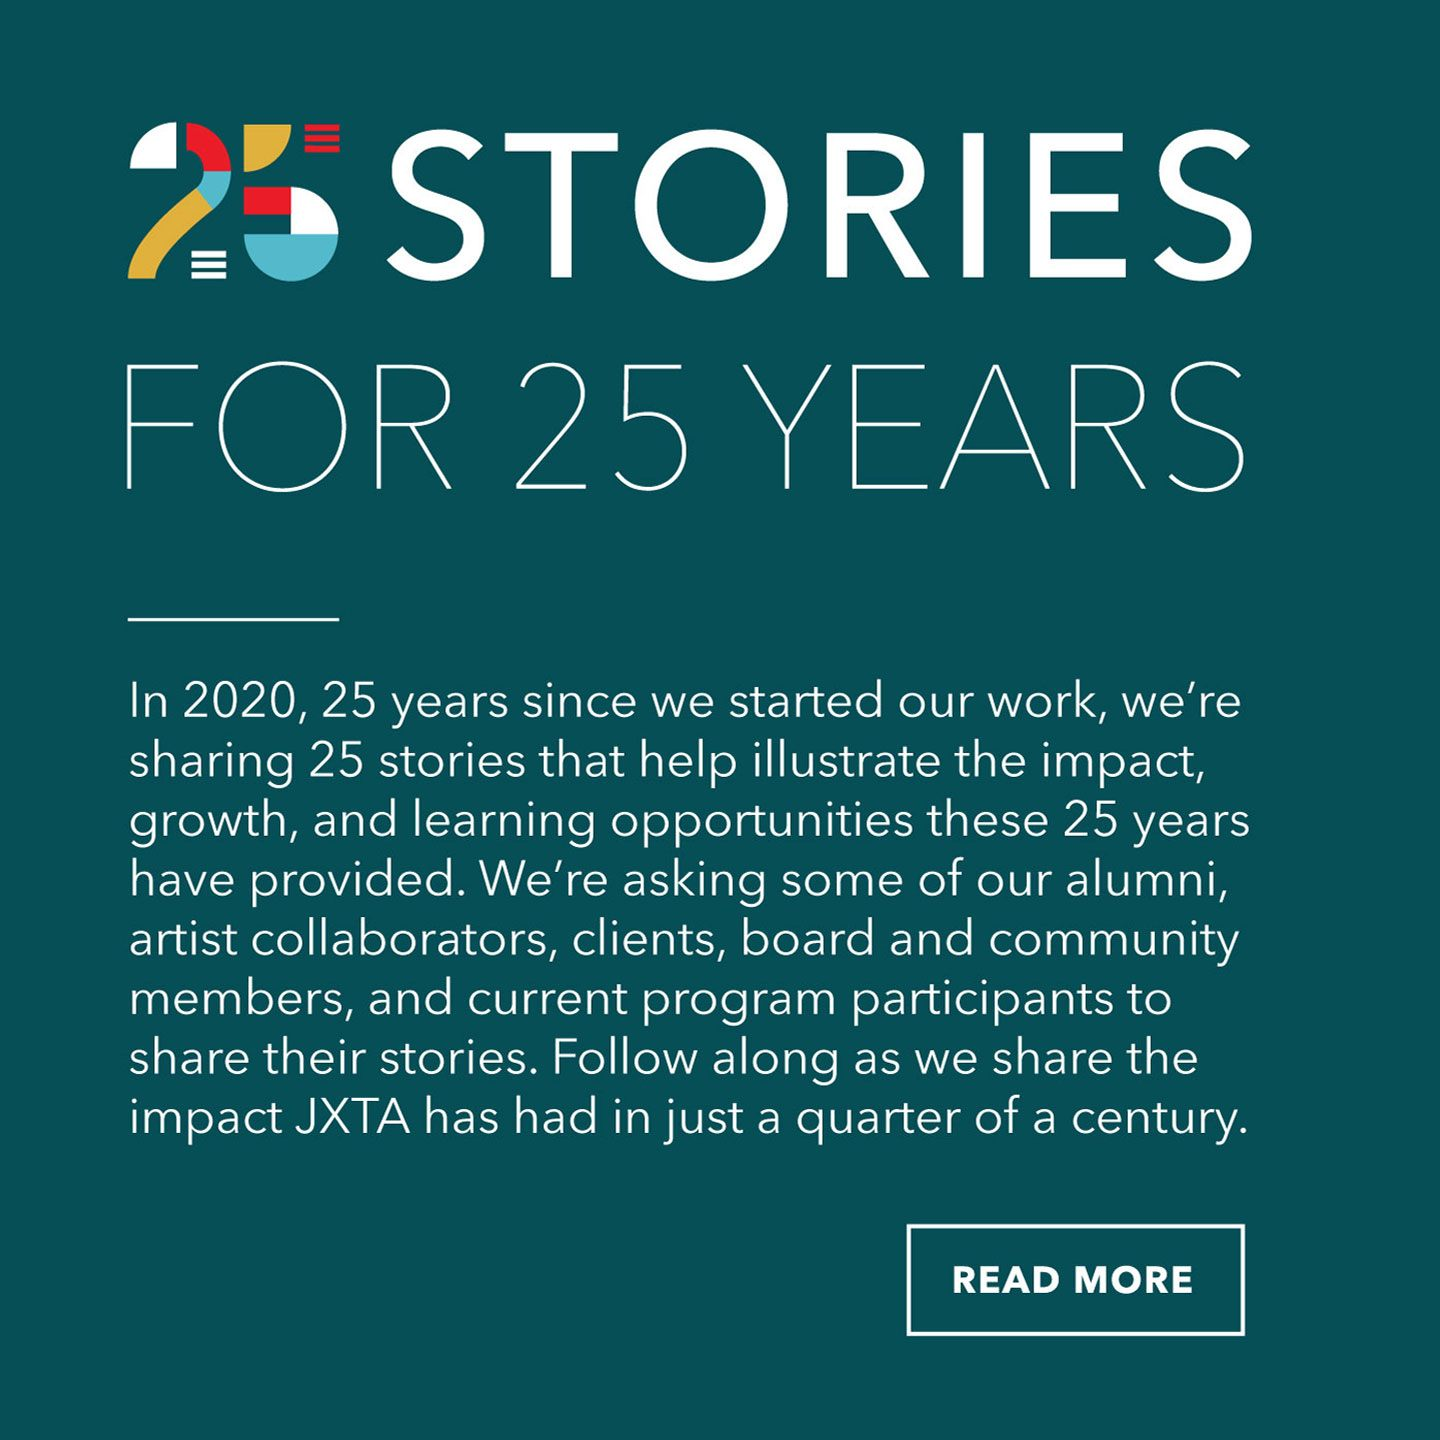 25 stories for 25 years. In 2020, 25 years since we started our work, we're sharing 25 stories that help illustrate the impact, growth, and learning opportunities these 25 years have provided. We're asking some of our alumni, artist collaborators, clients, board and community members, and current program participants to share their stories. Follow along as we share the impact JXTA has had in just a quarter of a century.